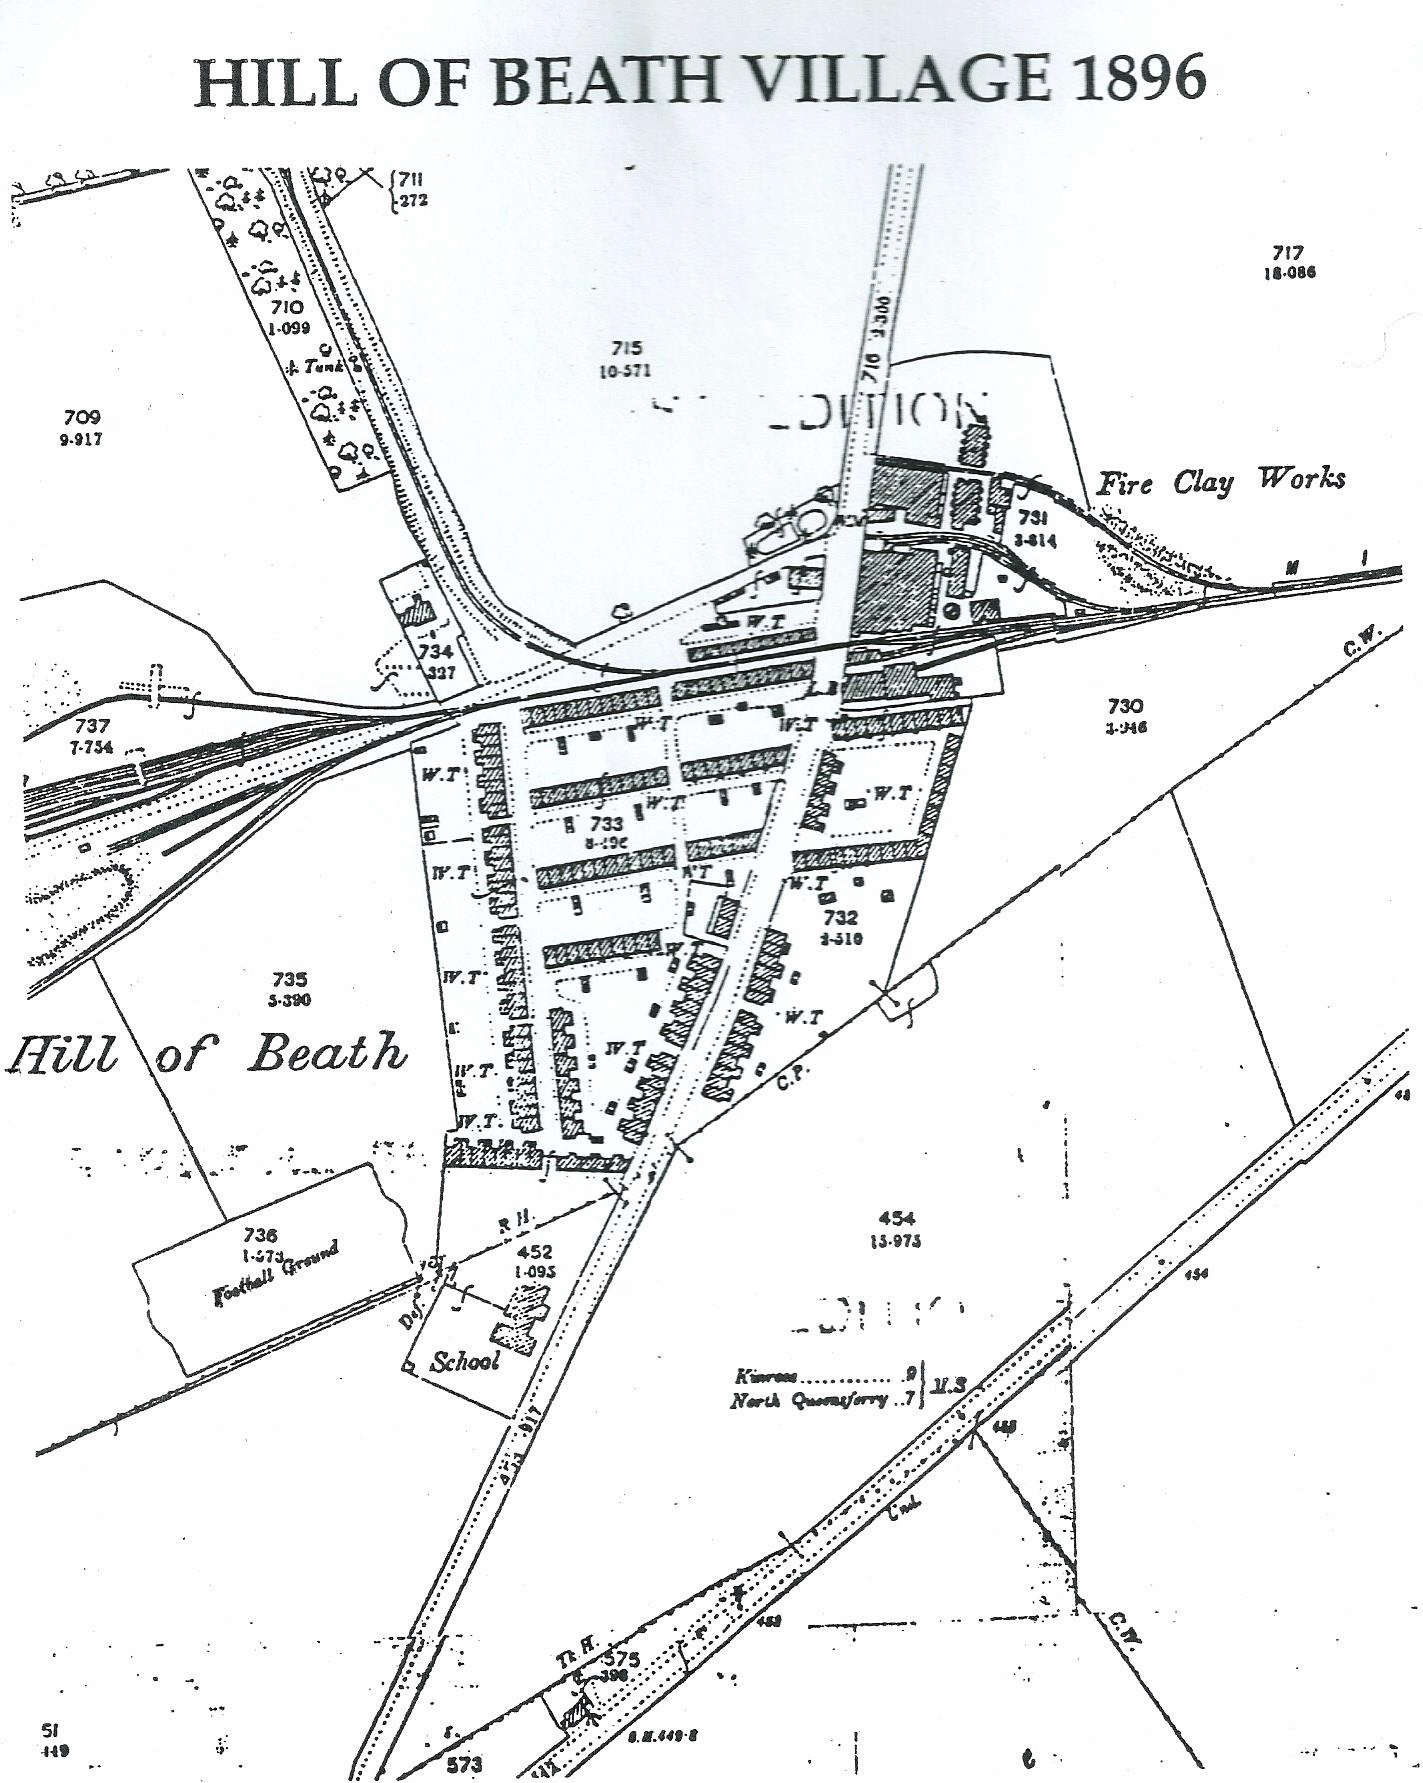 Map of Hill of Beath, Fife 1896. Thomas Knox GGF and wife Janet Myles lived here and had x3 children, John, James GF, Christina during this time. The Miners' row housing was built by the Fife Coal Company. The map also shows the Football ground, School and Fire Clay works